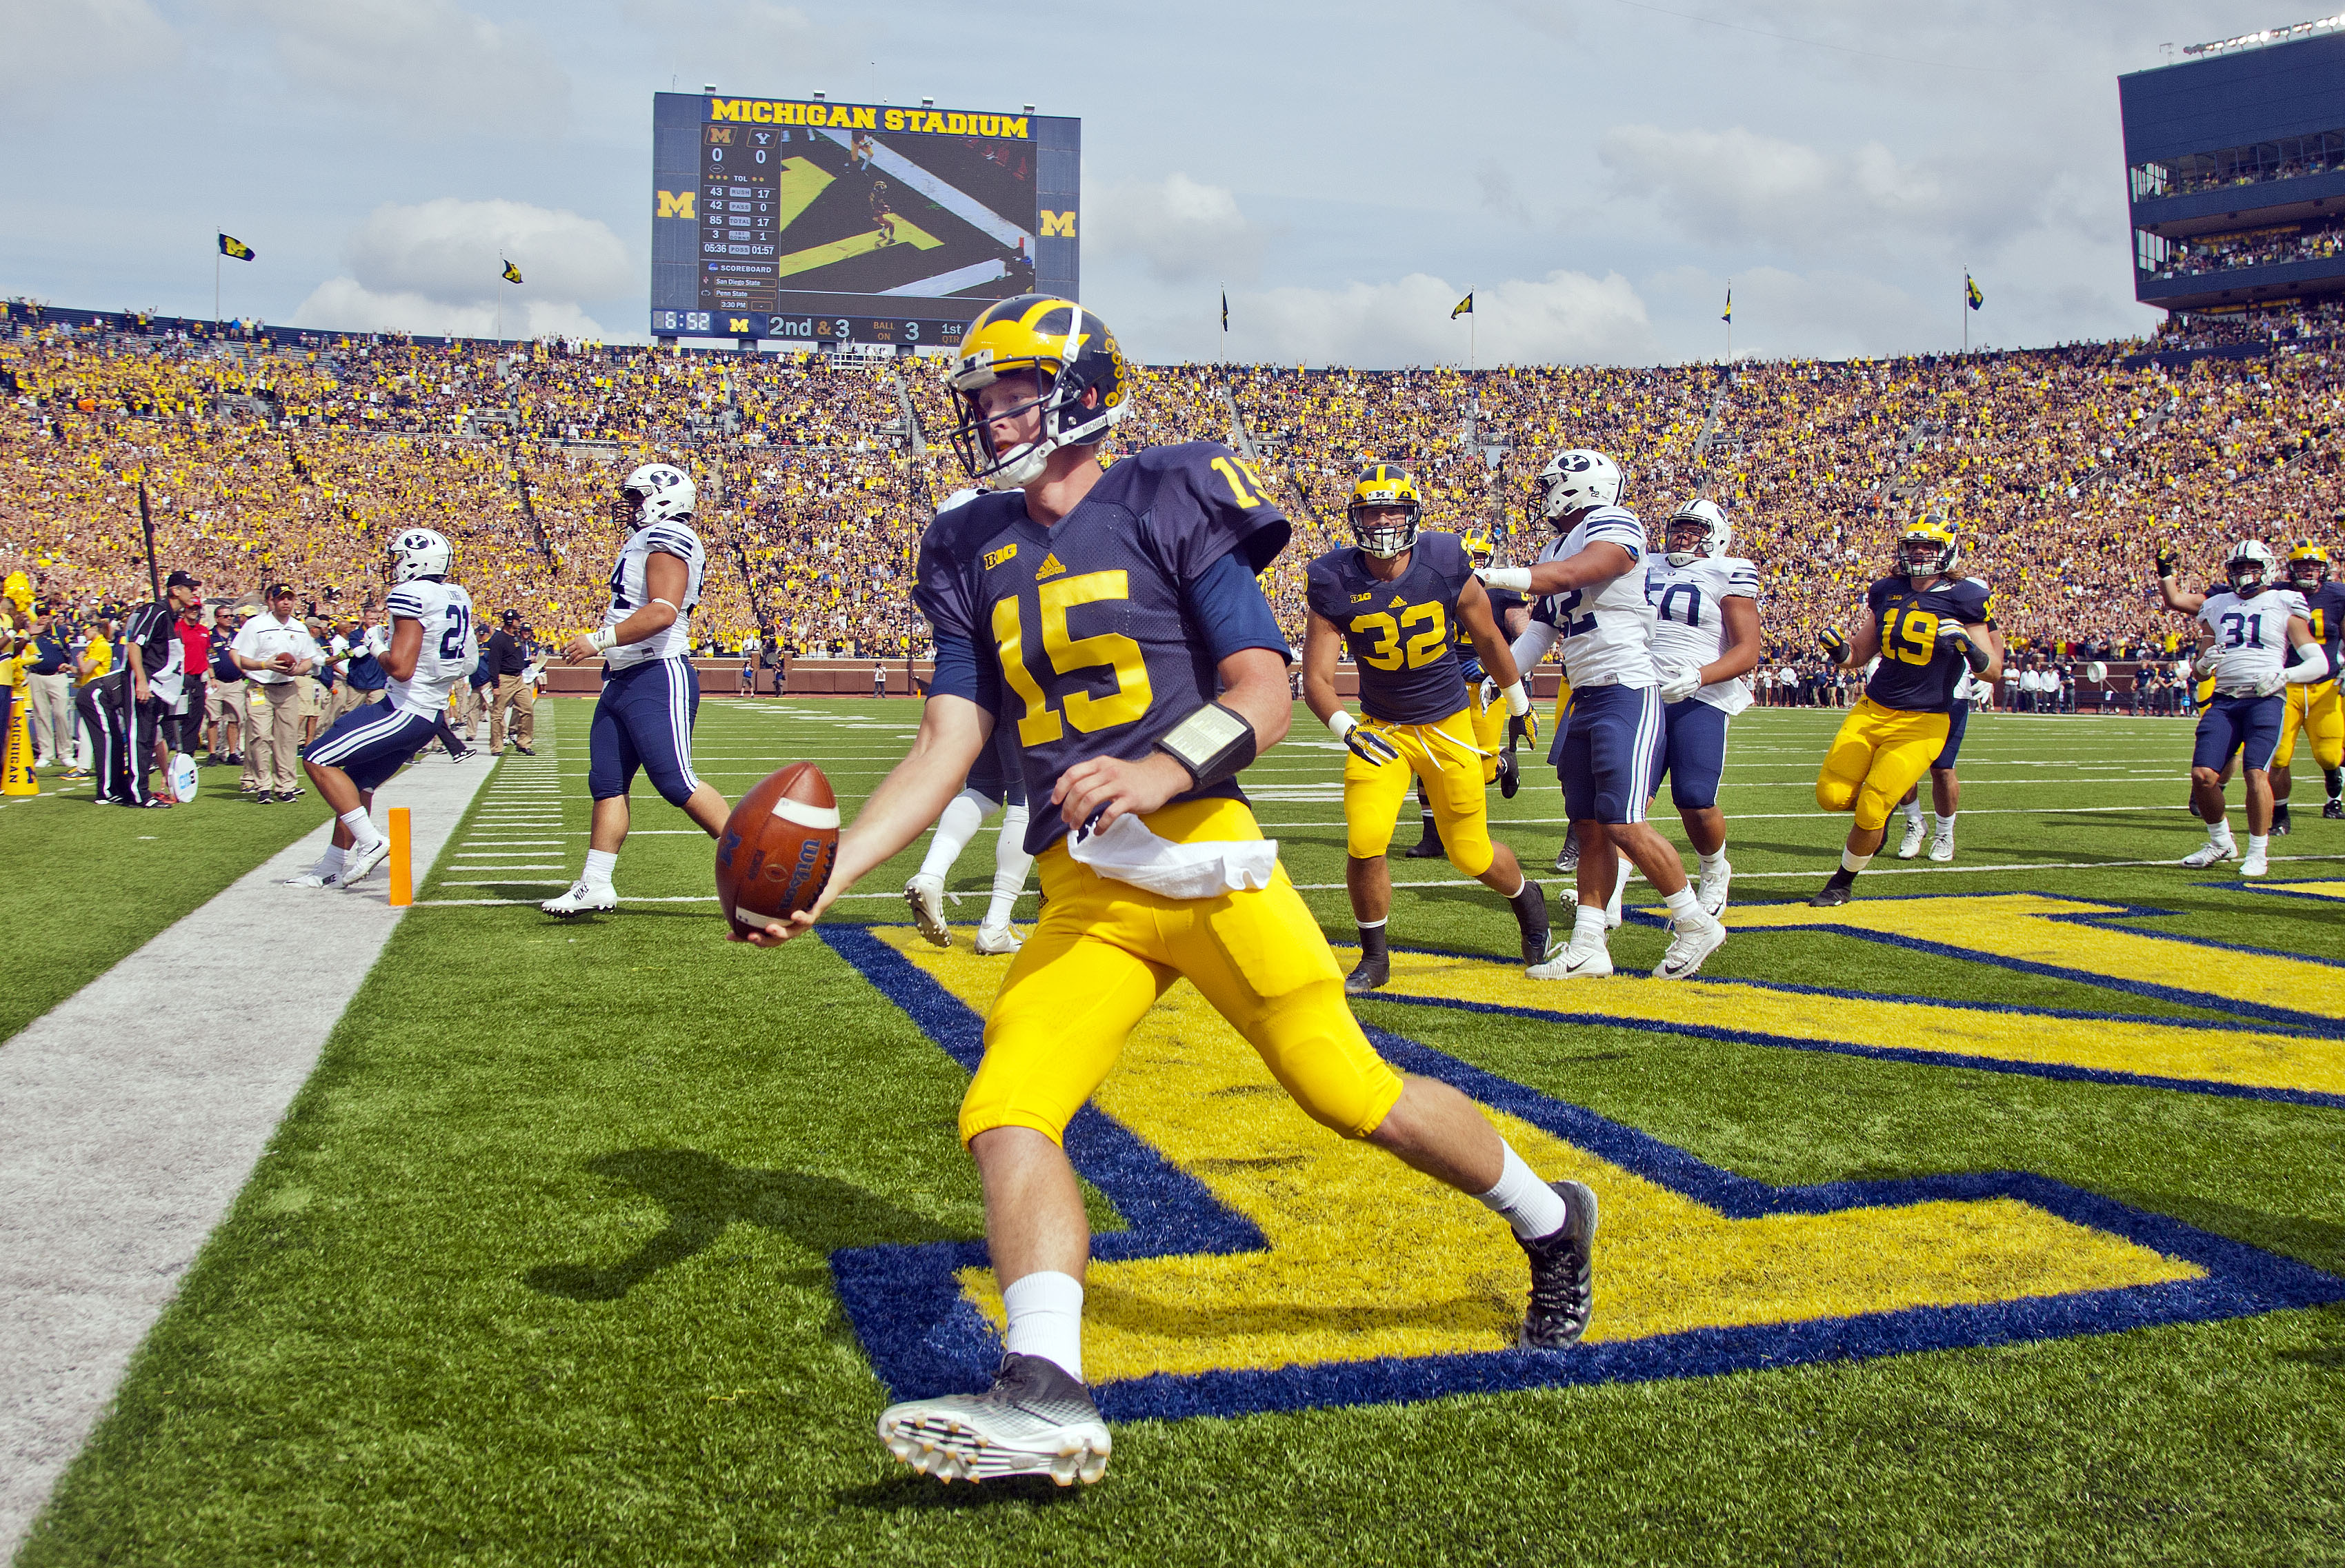 Michigan quarterback Jake Rudock (15) celebrates his touchdown in the first quarter of an NCAA college football game against BYU in Ann Arbor, Mich., Saturday, Sept. 26, 2015. (AP Photo/Tony Ding)